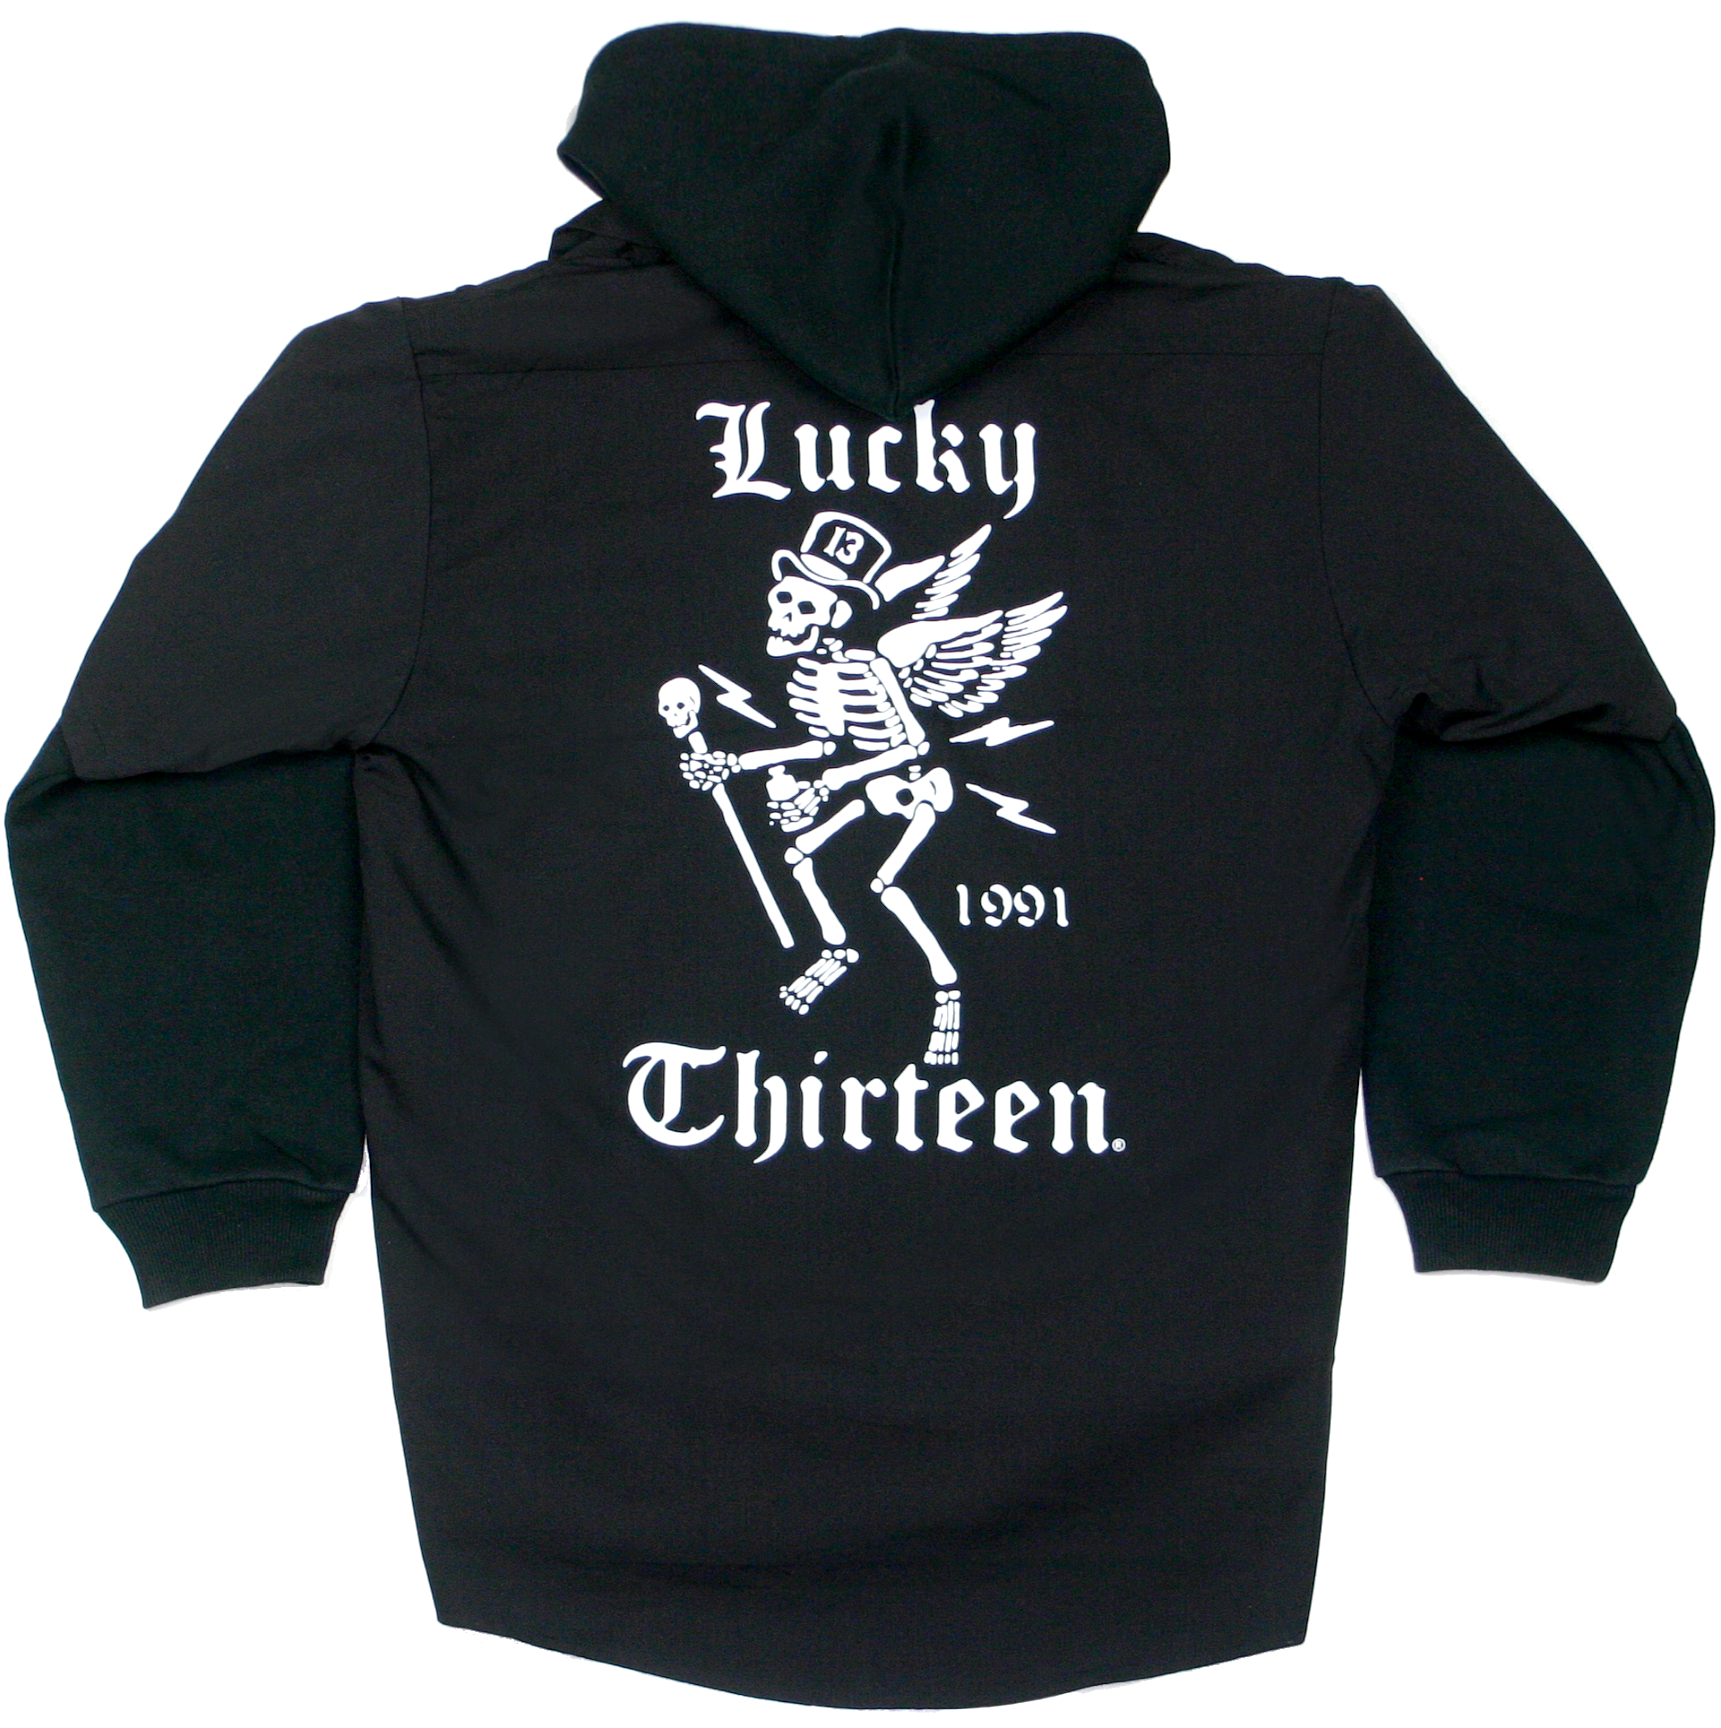 The WINGED SKULLY Men's Full Zip Hooded Work Shirt 2-Fer - LIMITED EDITION